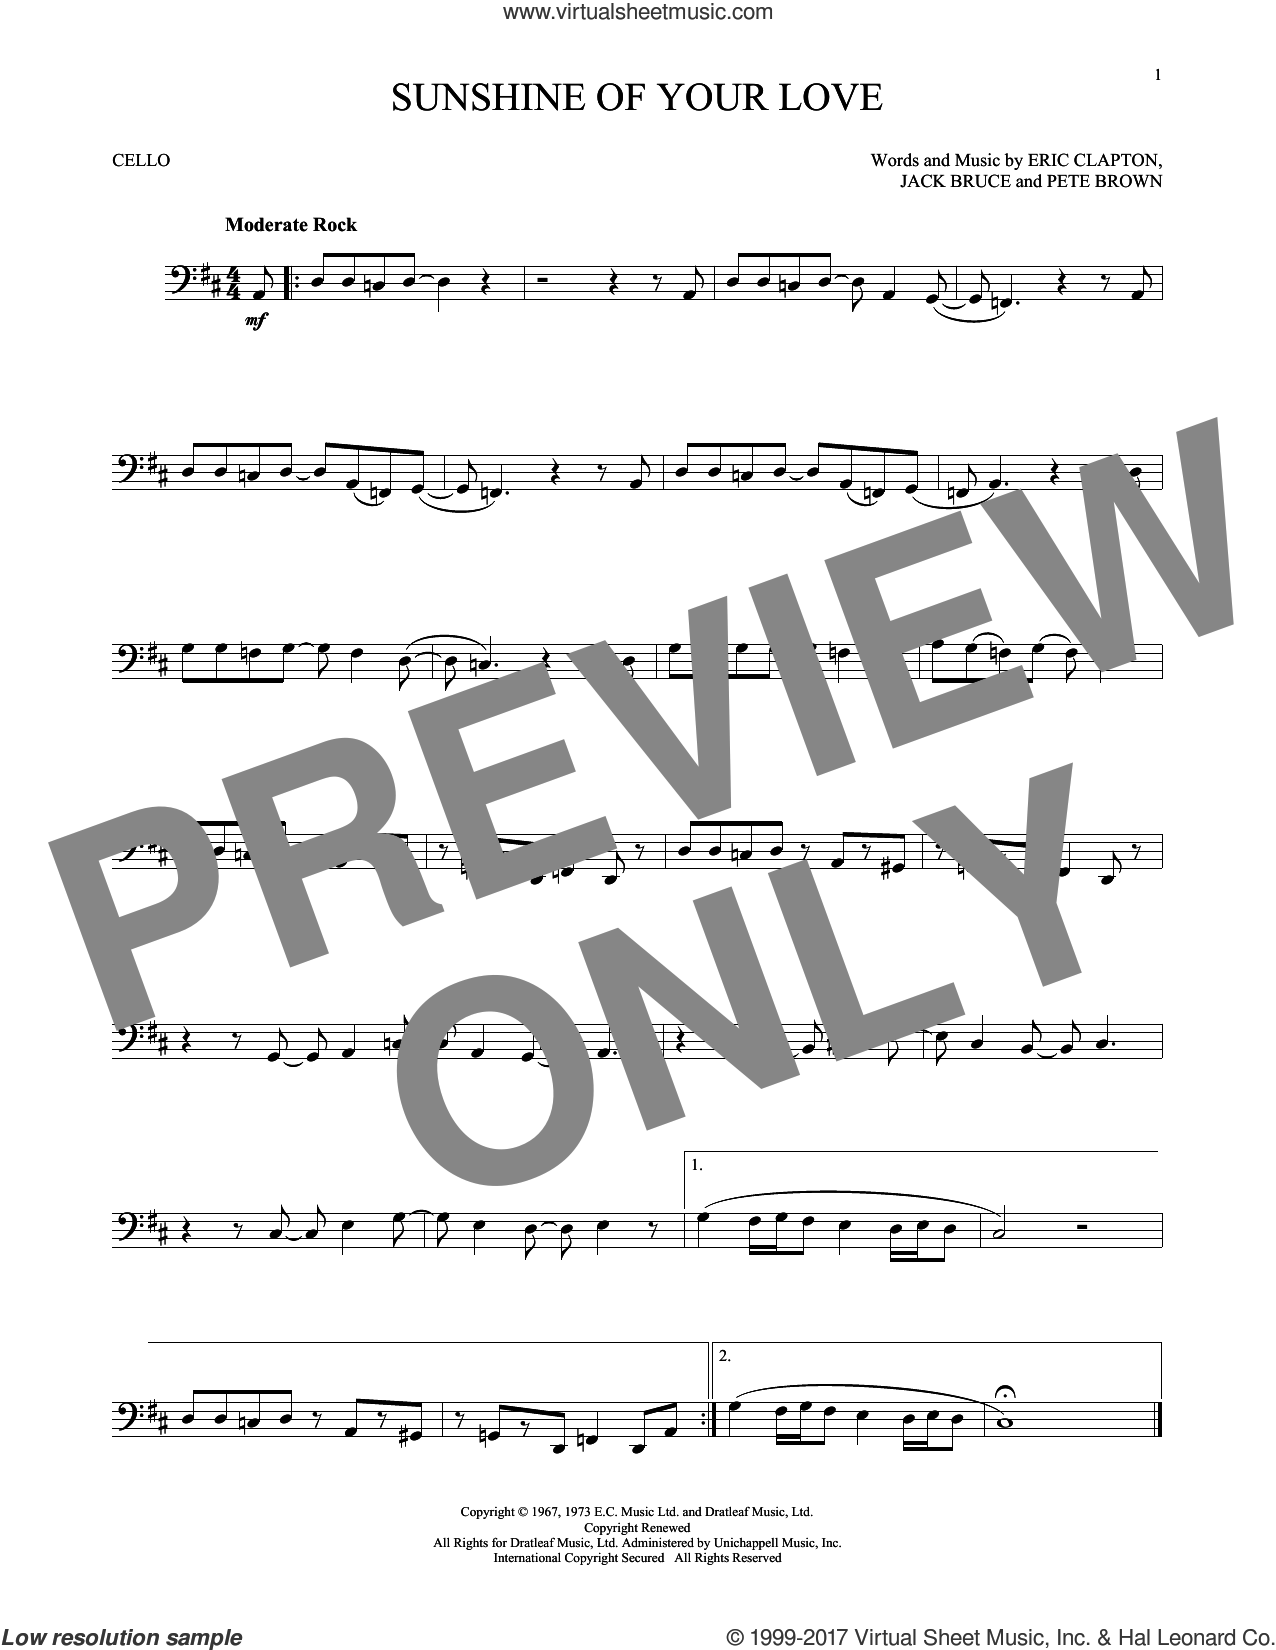 Sunshine Of Your Love sheet music for cello solo by Cream, Eric Clapton, Jack Bruce and Pete Brown, intermediate. Score Image Preview.